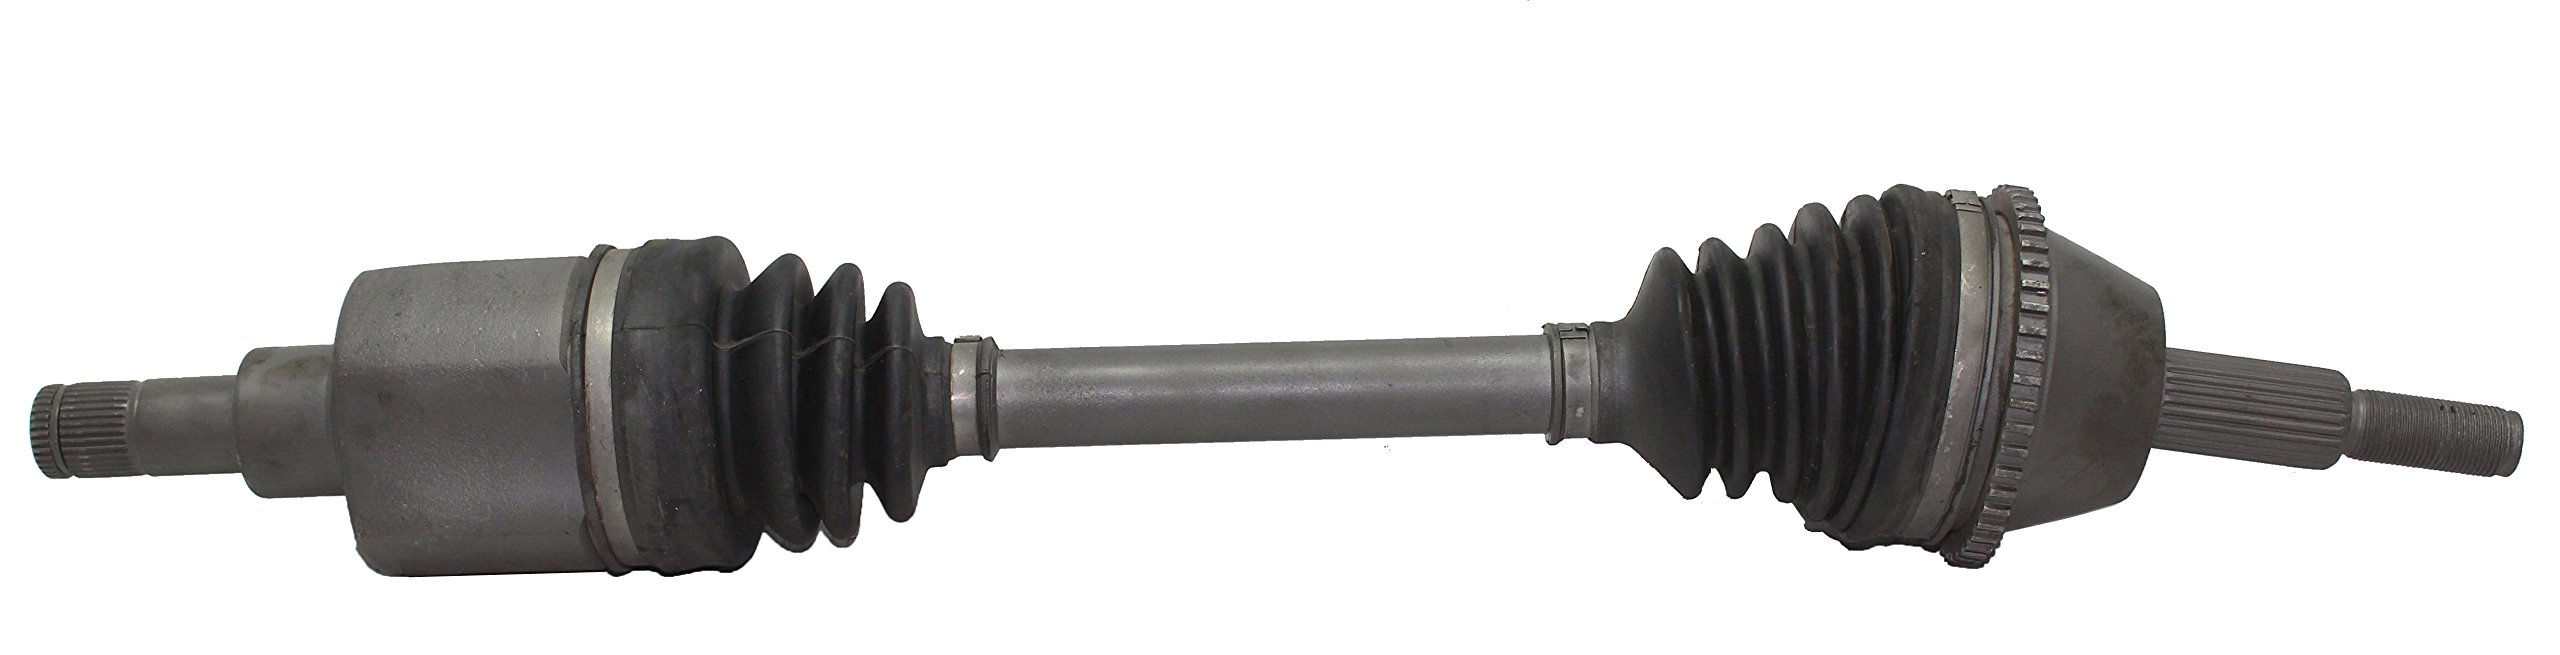 Complete Front Passenger Side CV Axle Shaft for Sable, Taurus W/ABS W/ AX4S or AX0D Transmission